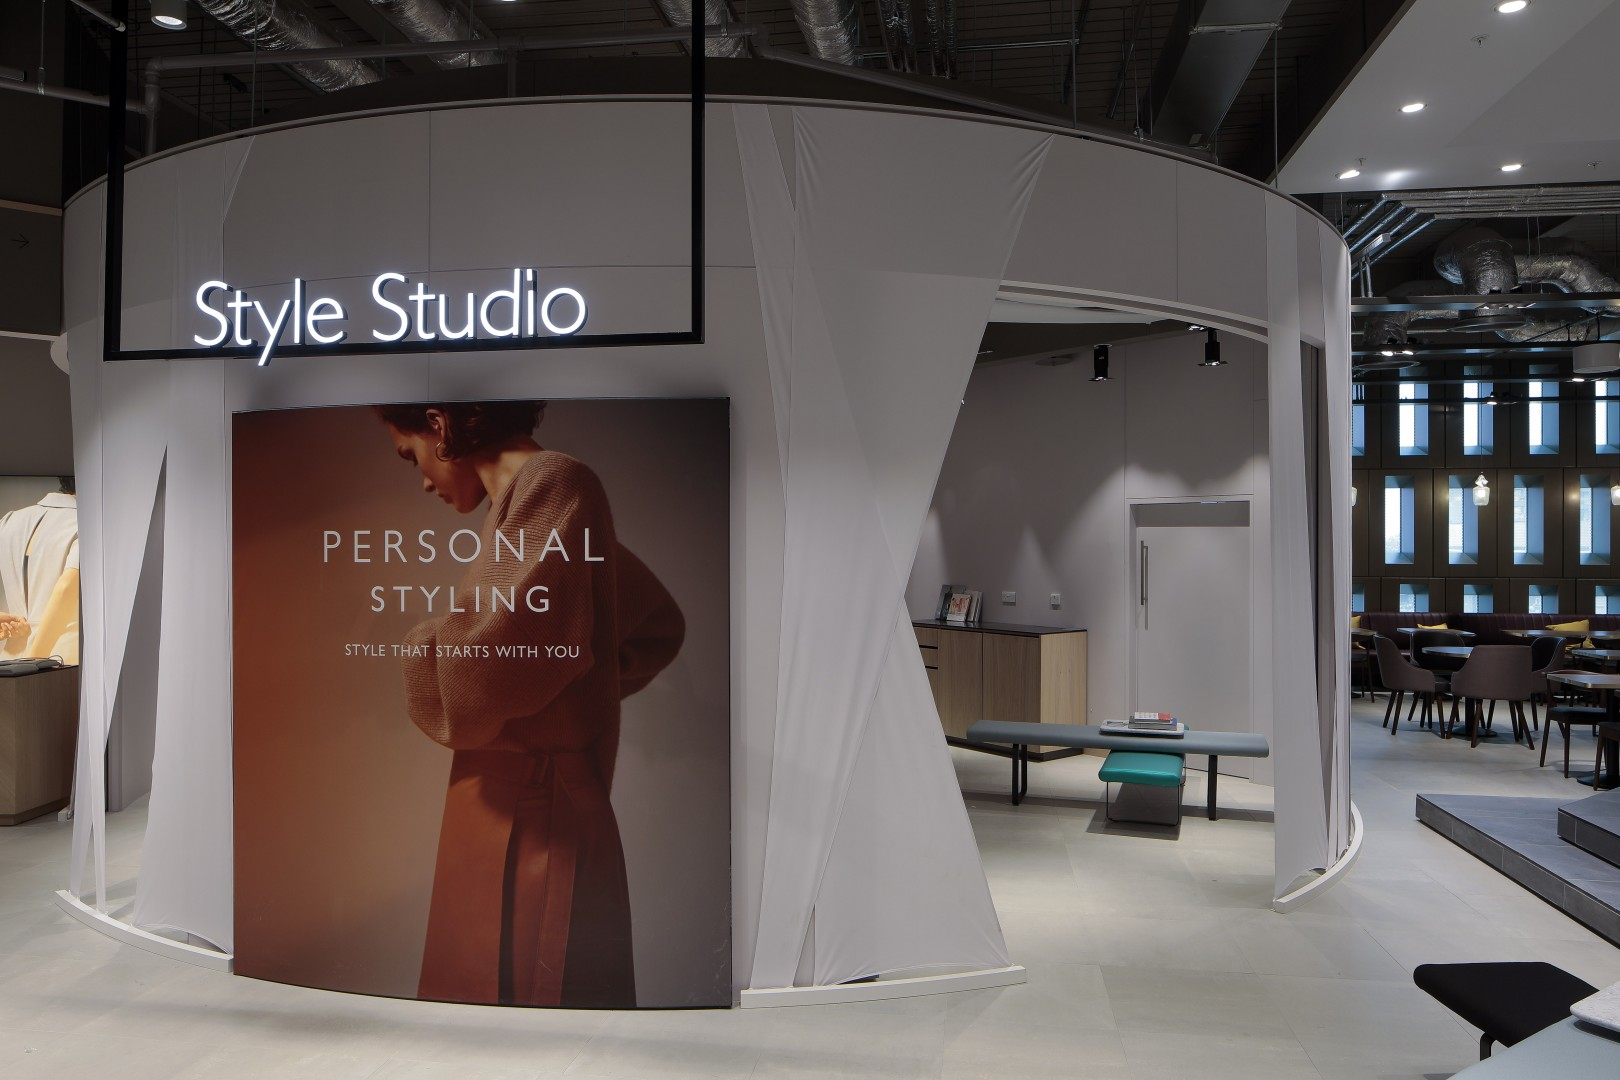 Personal Styling from John Lewis Styling Studio